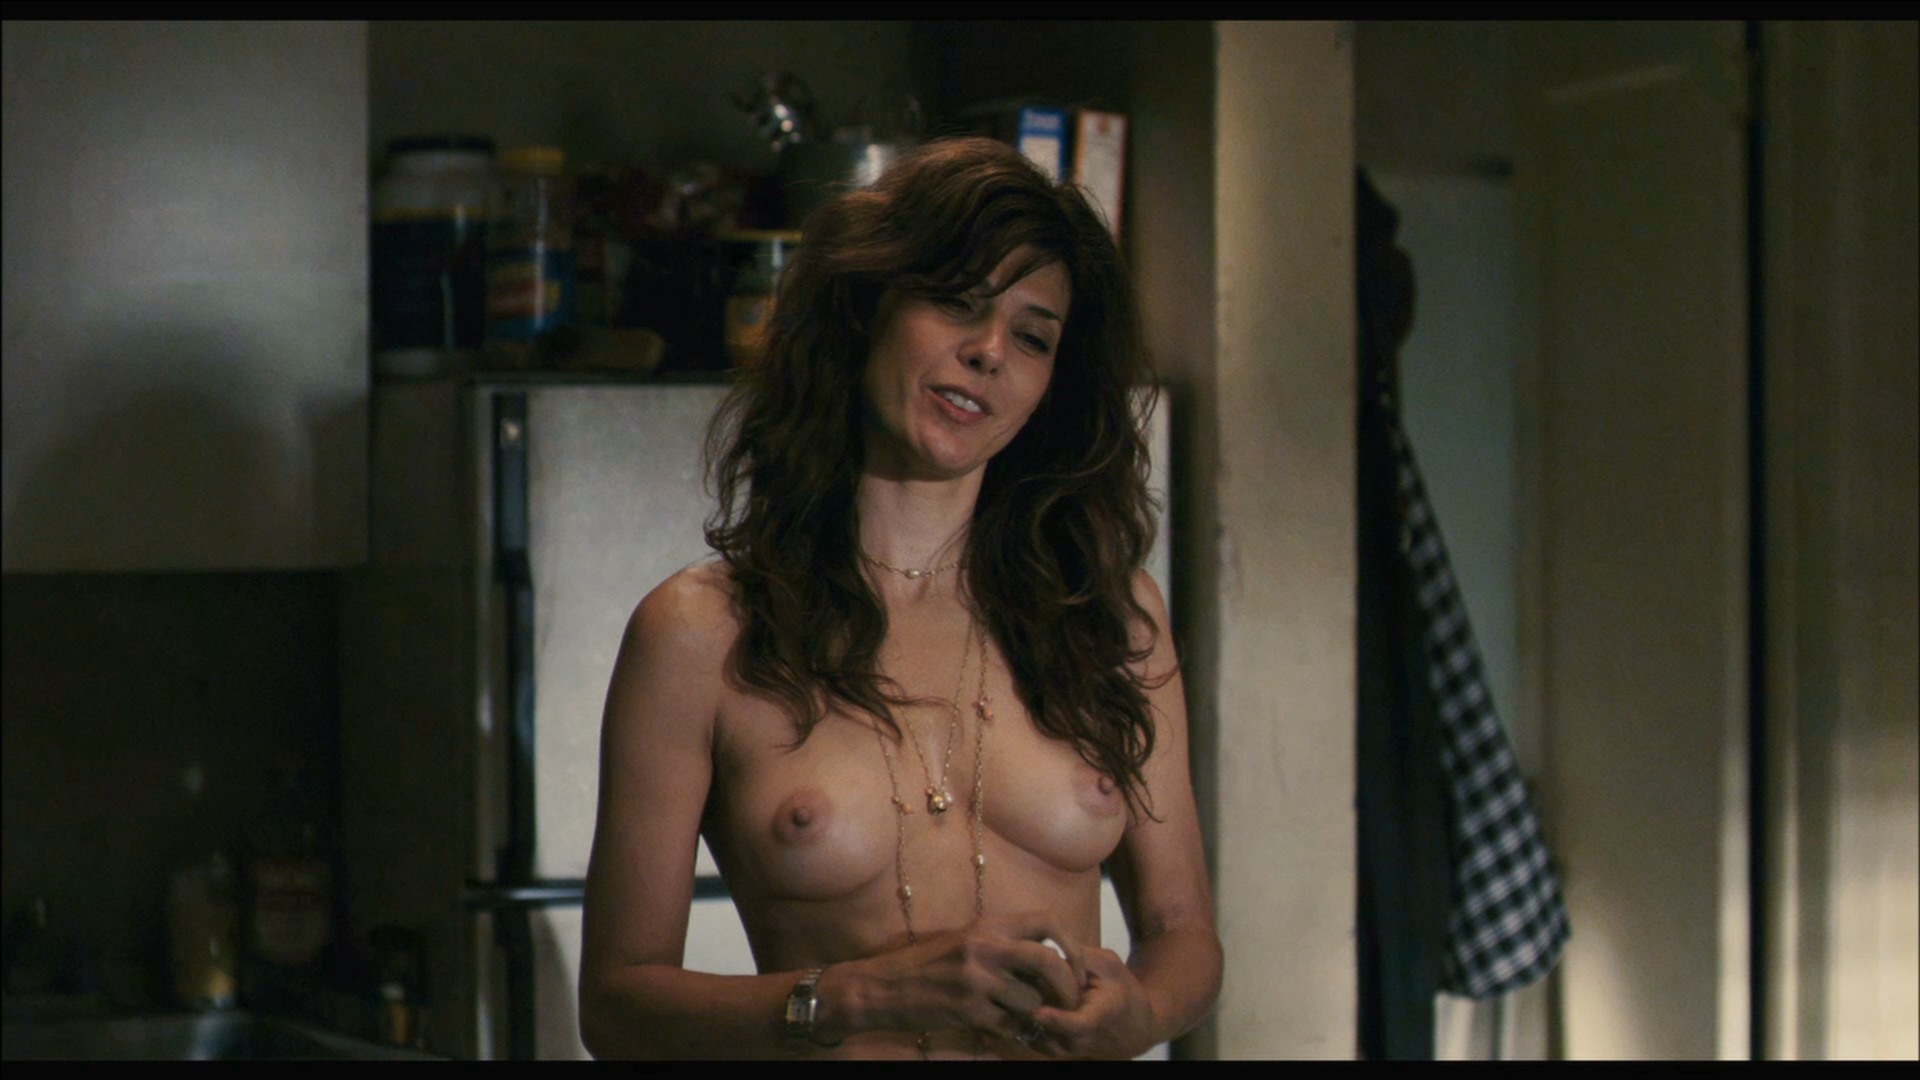 The Marisa tomei hot